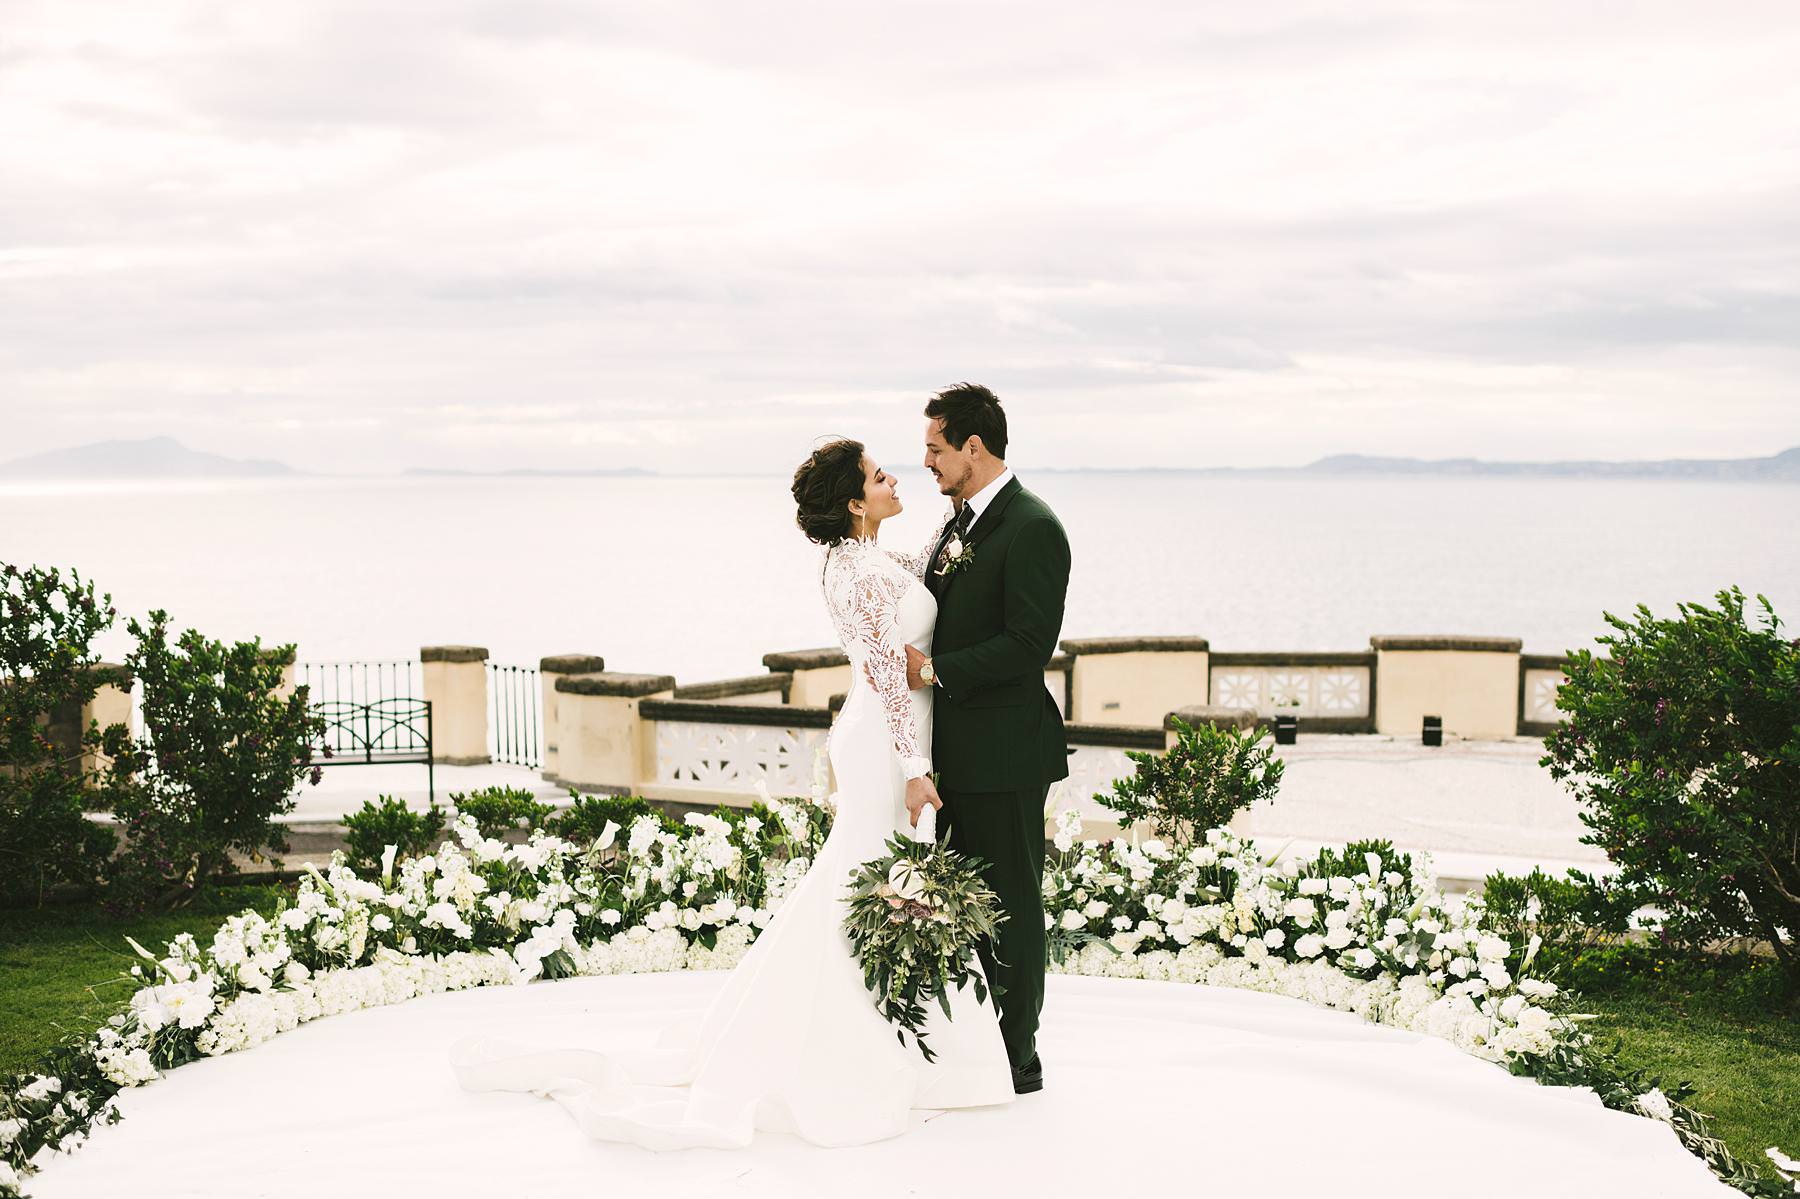 Lovely and intimate wedding couple portrait in Sorrento at Villa Angelina